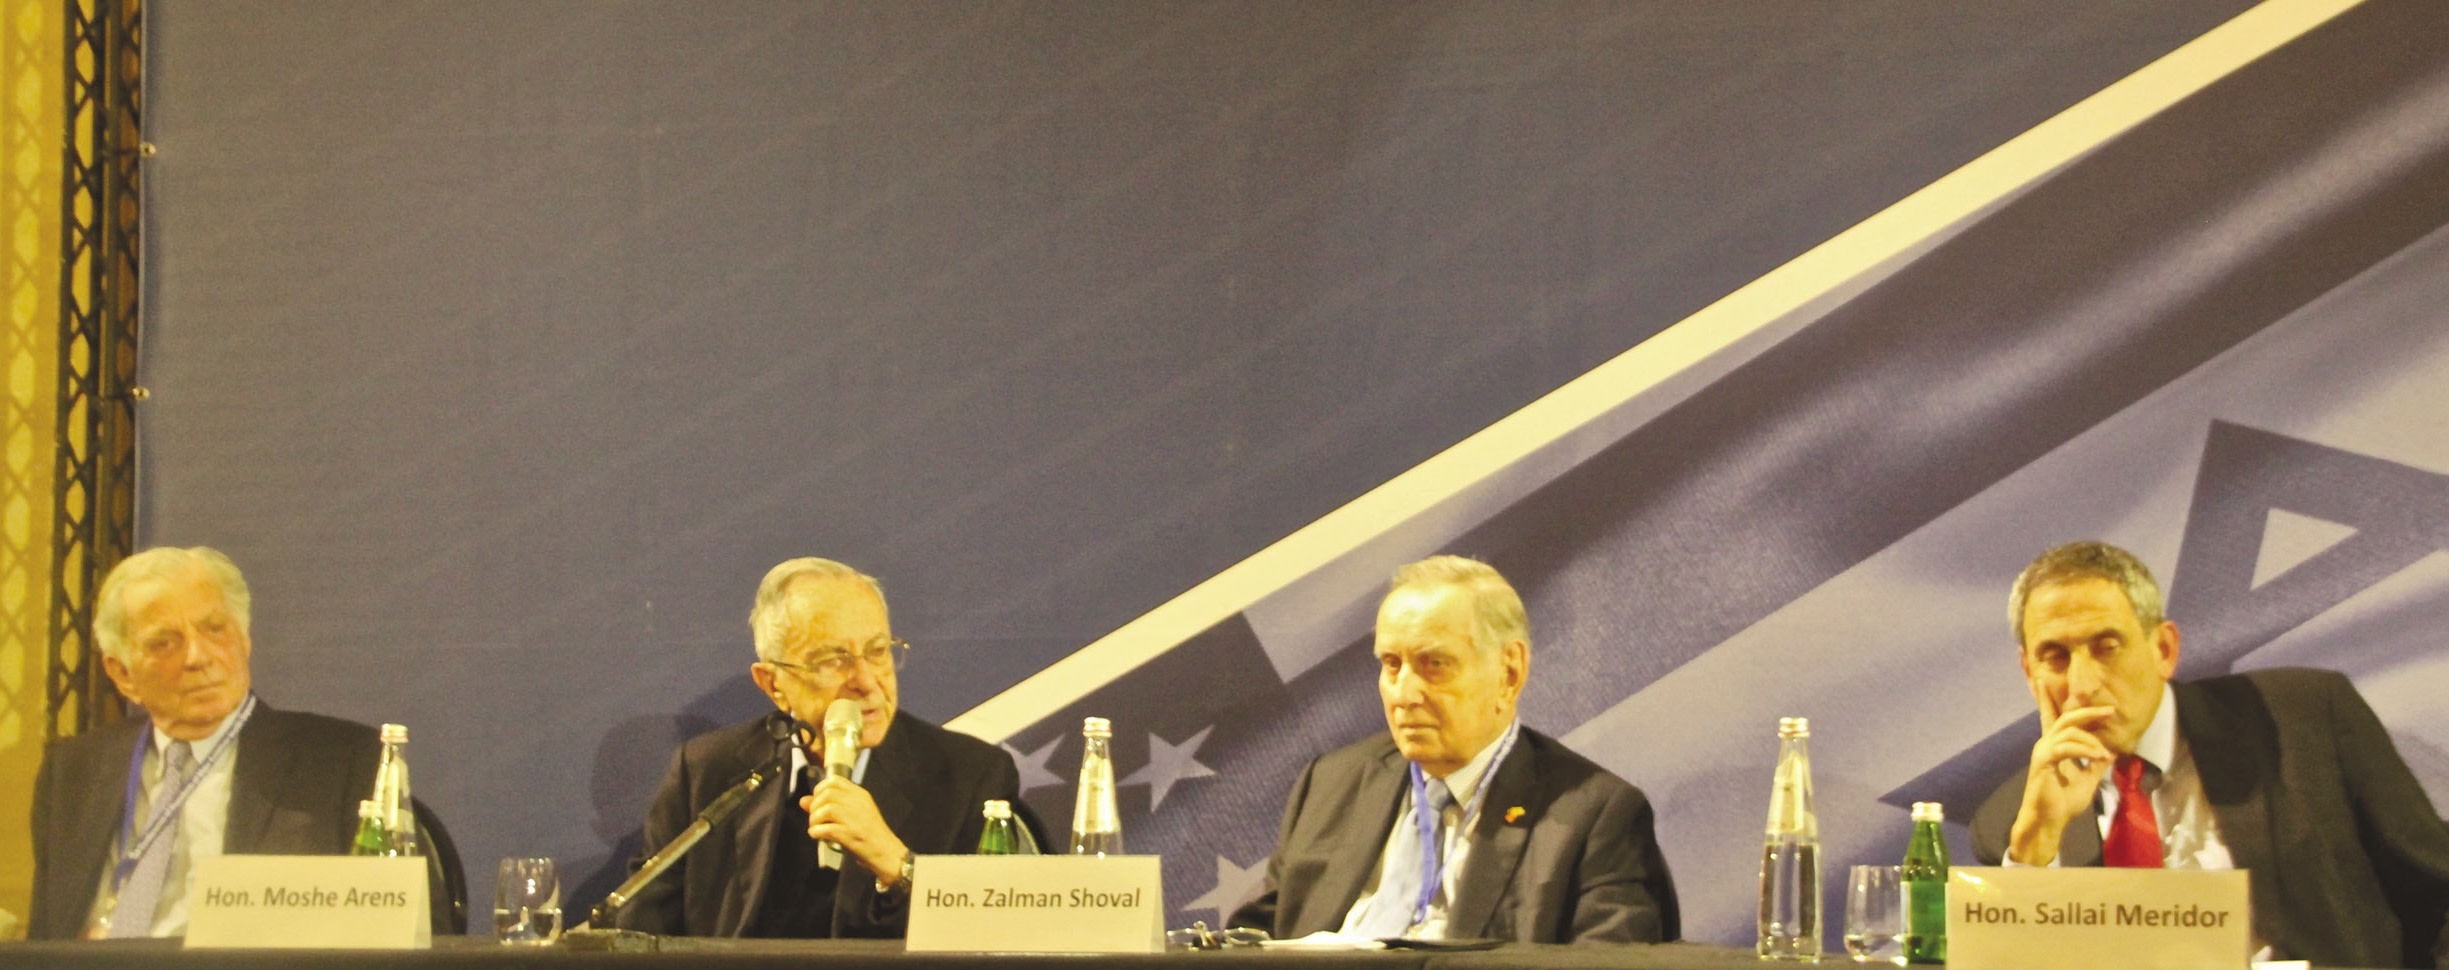 FORMER AMBASSADORS to the US, from left, Itamar Rabinovich, Moshe Arens, Zalman Shoval and Sallai Meridor take part in a panel discussions at the Conference of Presidents of Major American Jewish Organizations in Jerusalem (Tovah Lazaroff)